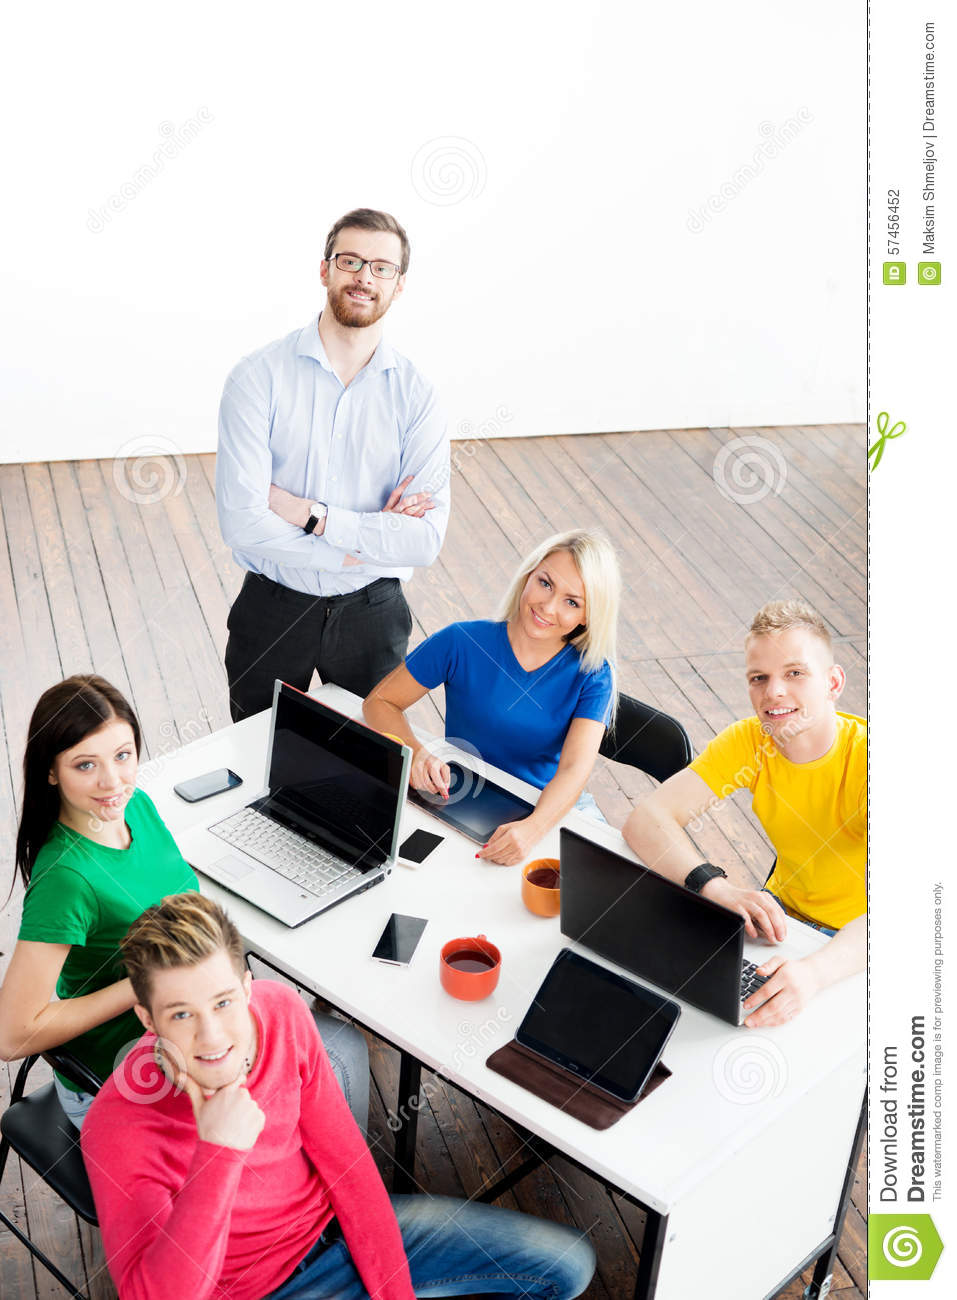 Modern Classroom With Students ~ Students with teacher studying using modern technologies